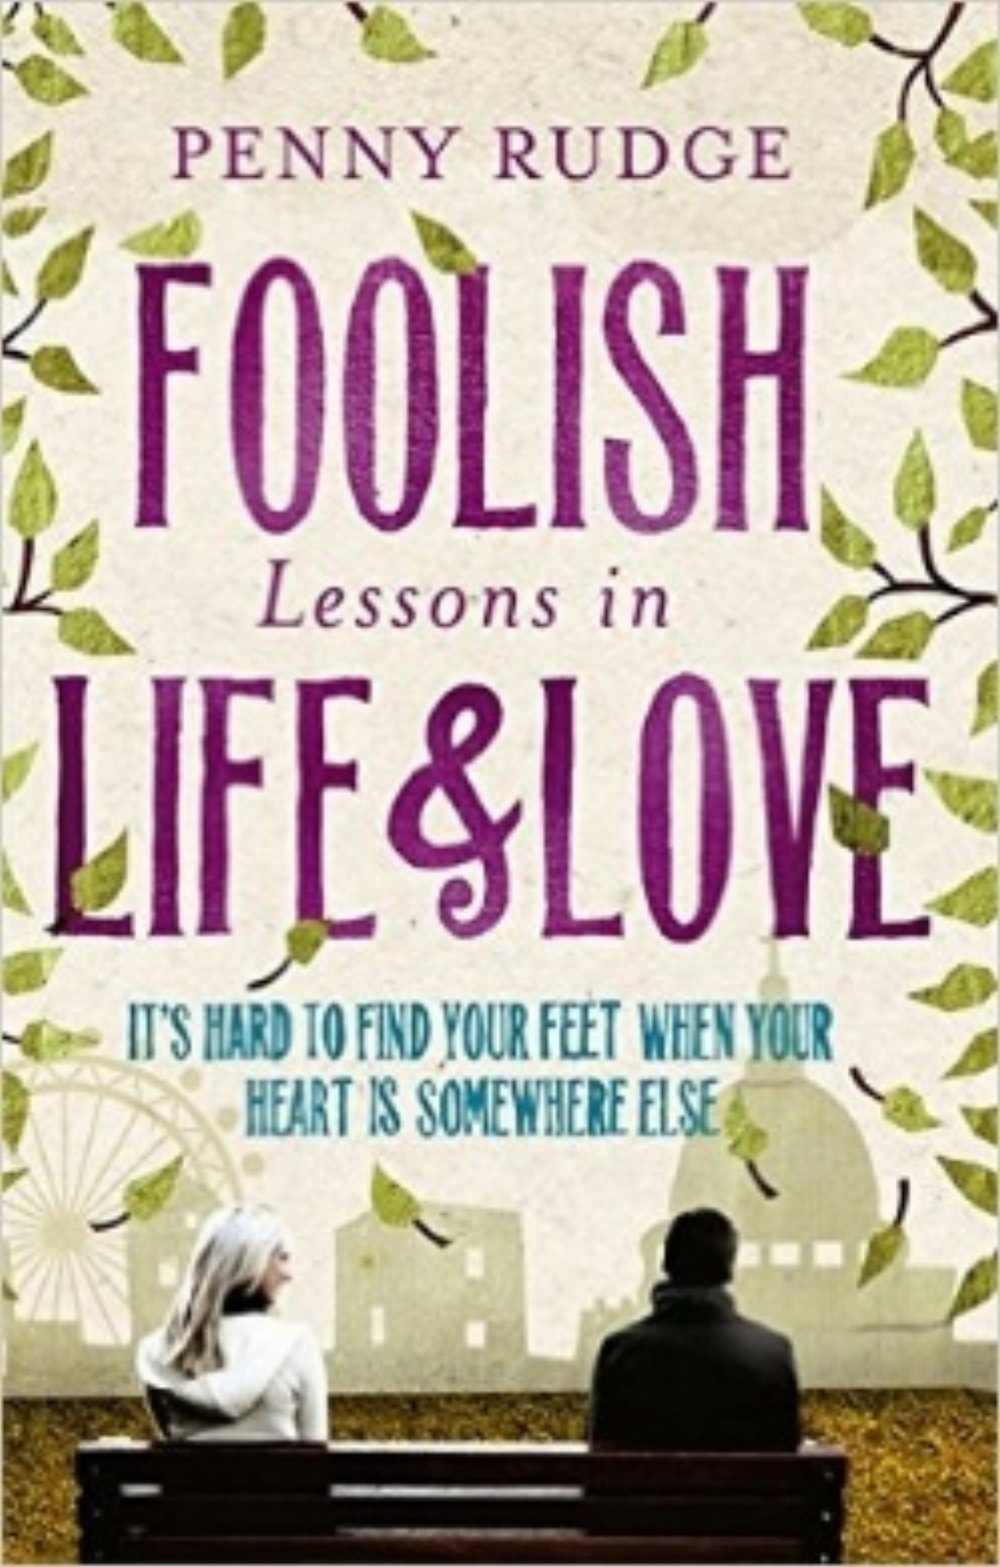 foolish-lessons-in-life-and-love-penny-rudge.jpg